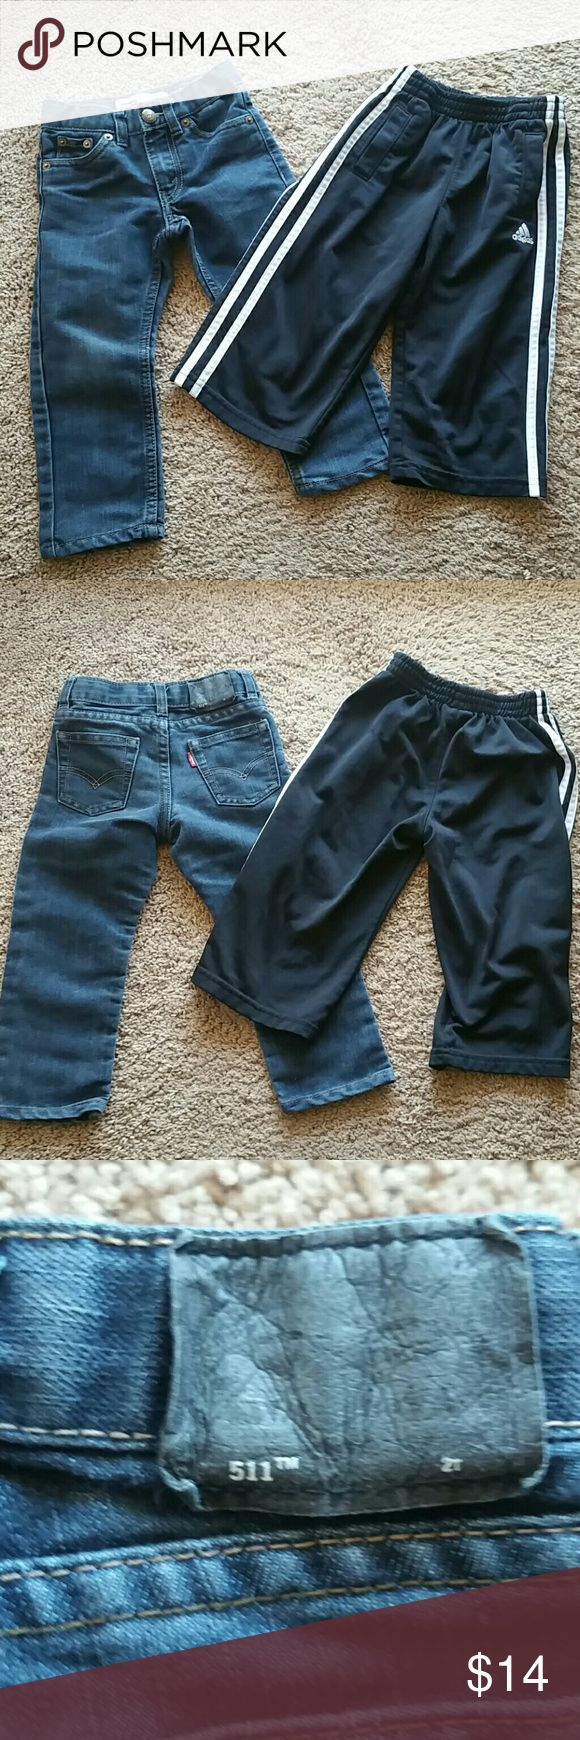 2 pc Levis and Adidas pants Levis 511 slim fit with waist adjusters, zip fly with 5 pocket styling.  Adidas have elastic waist and 2 pocket styling.  Pre owned, but in great condition.  Levis are dark wash denim. Please ask questions prior to purchase. Levis and Adidas Bottoms Casual